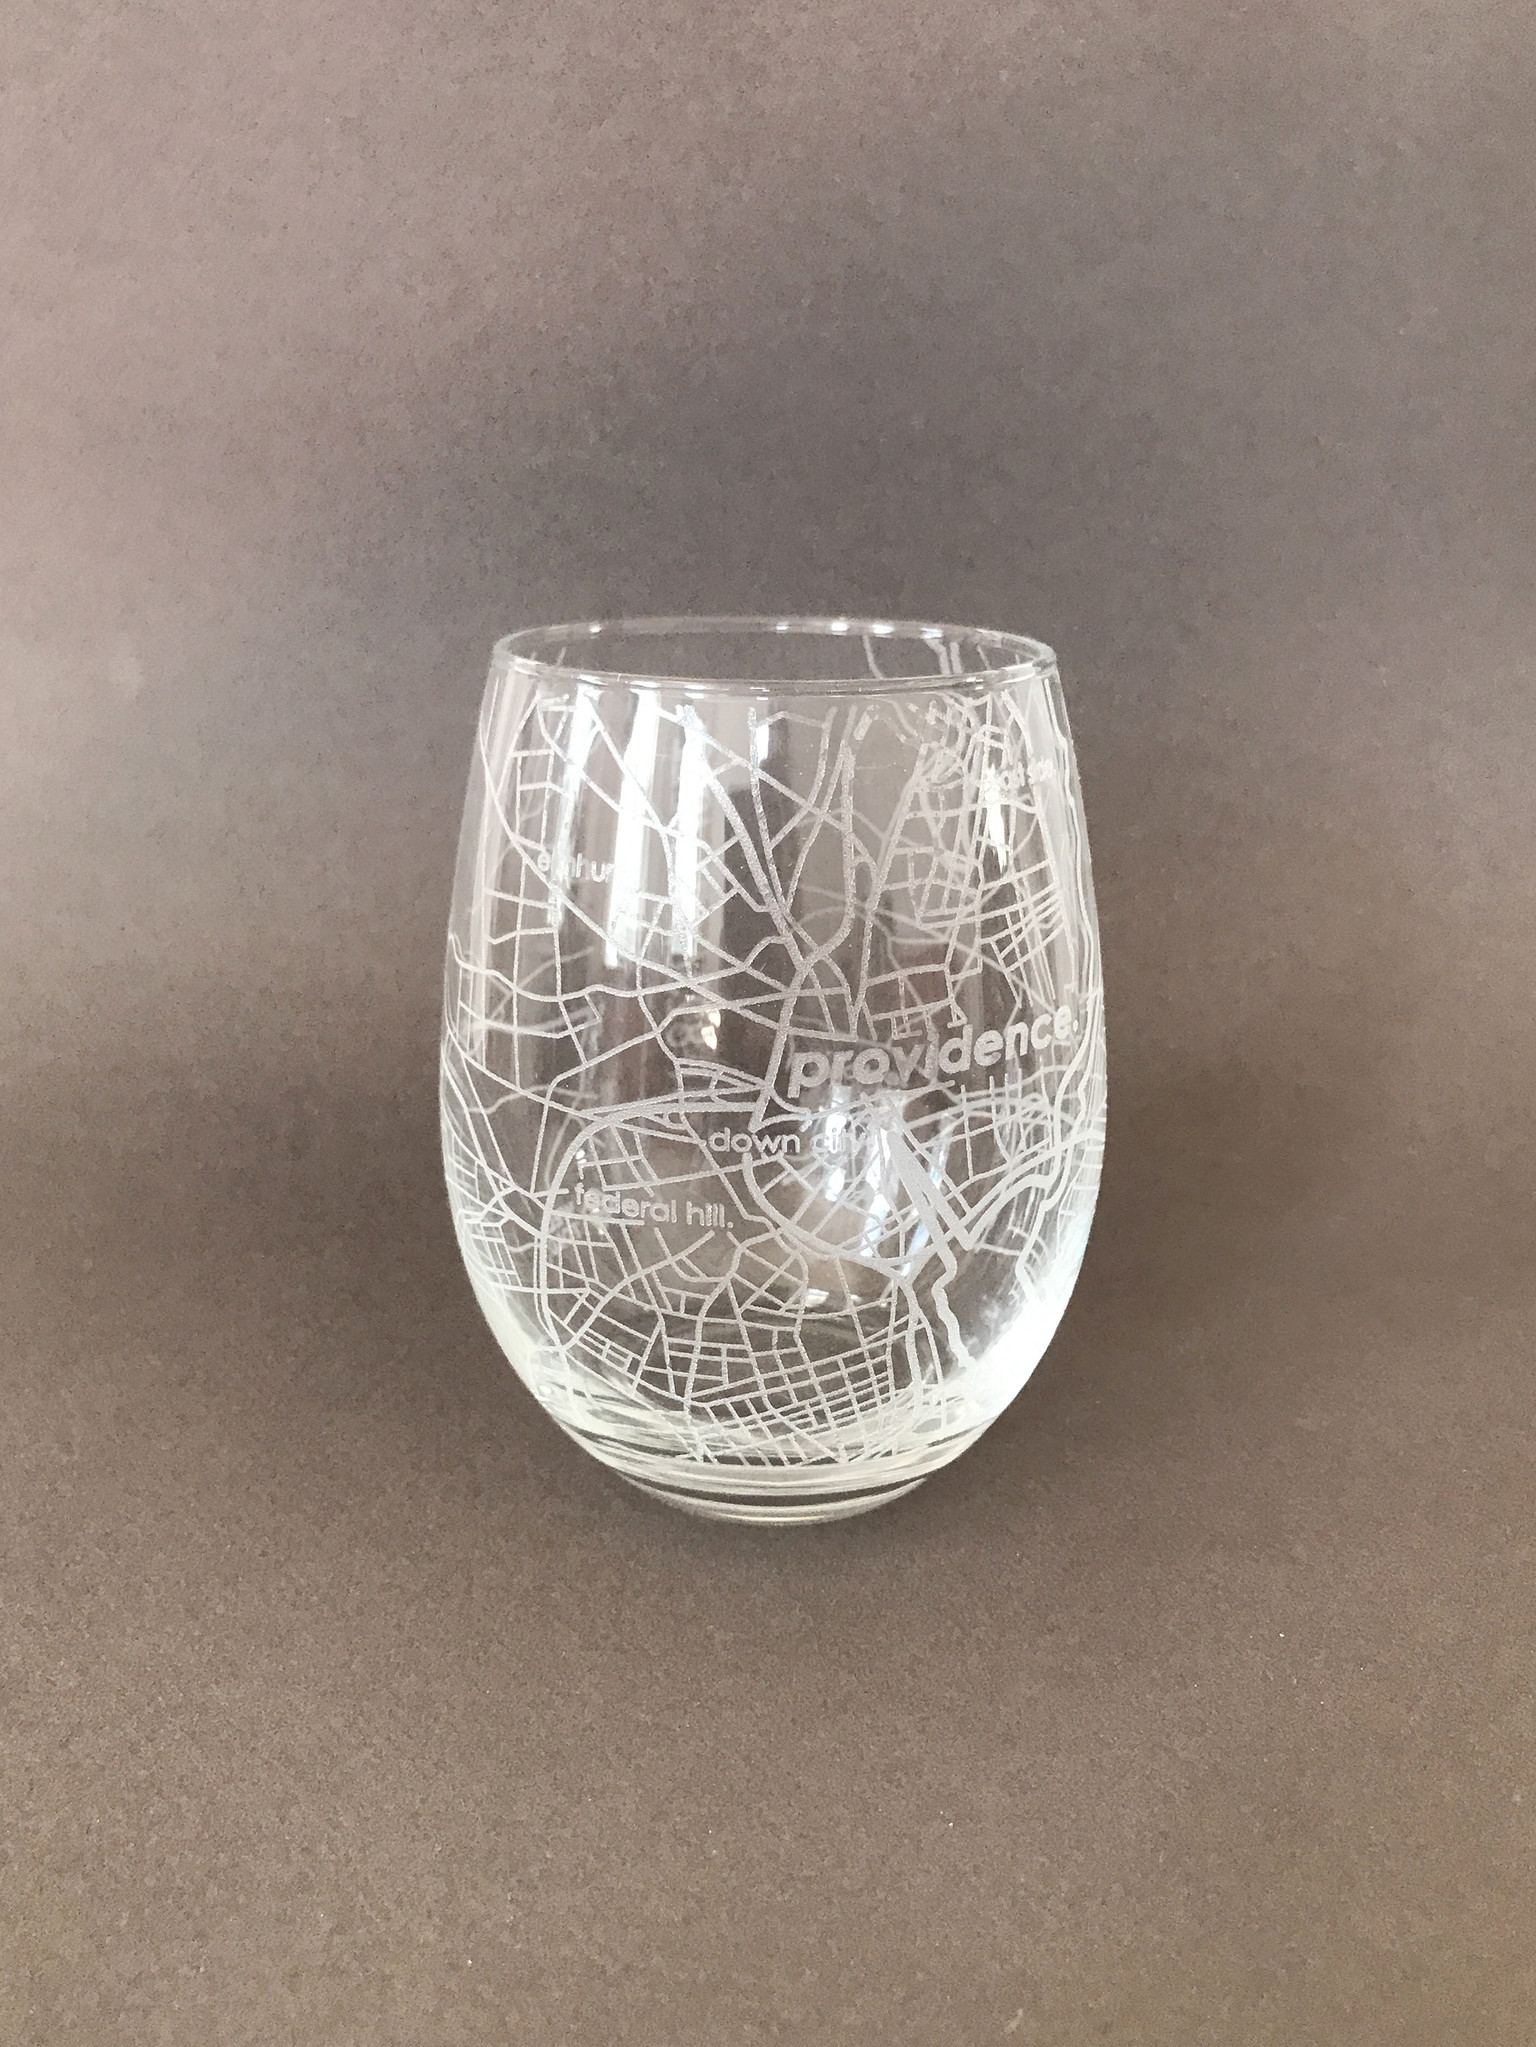 Well Told Hometown Providence Stemless Wine Glass-1